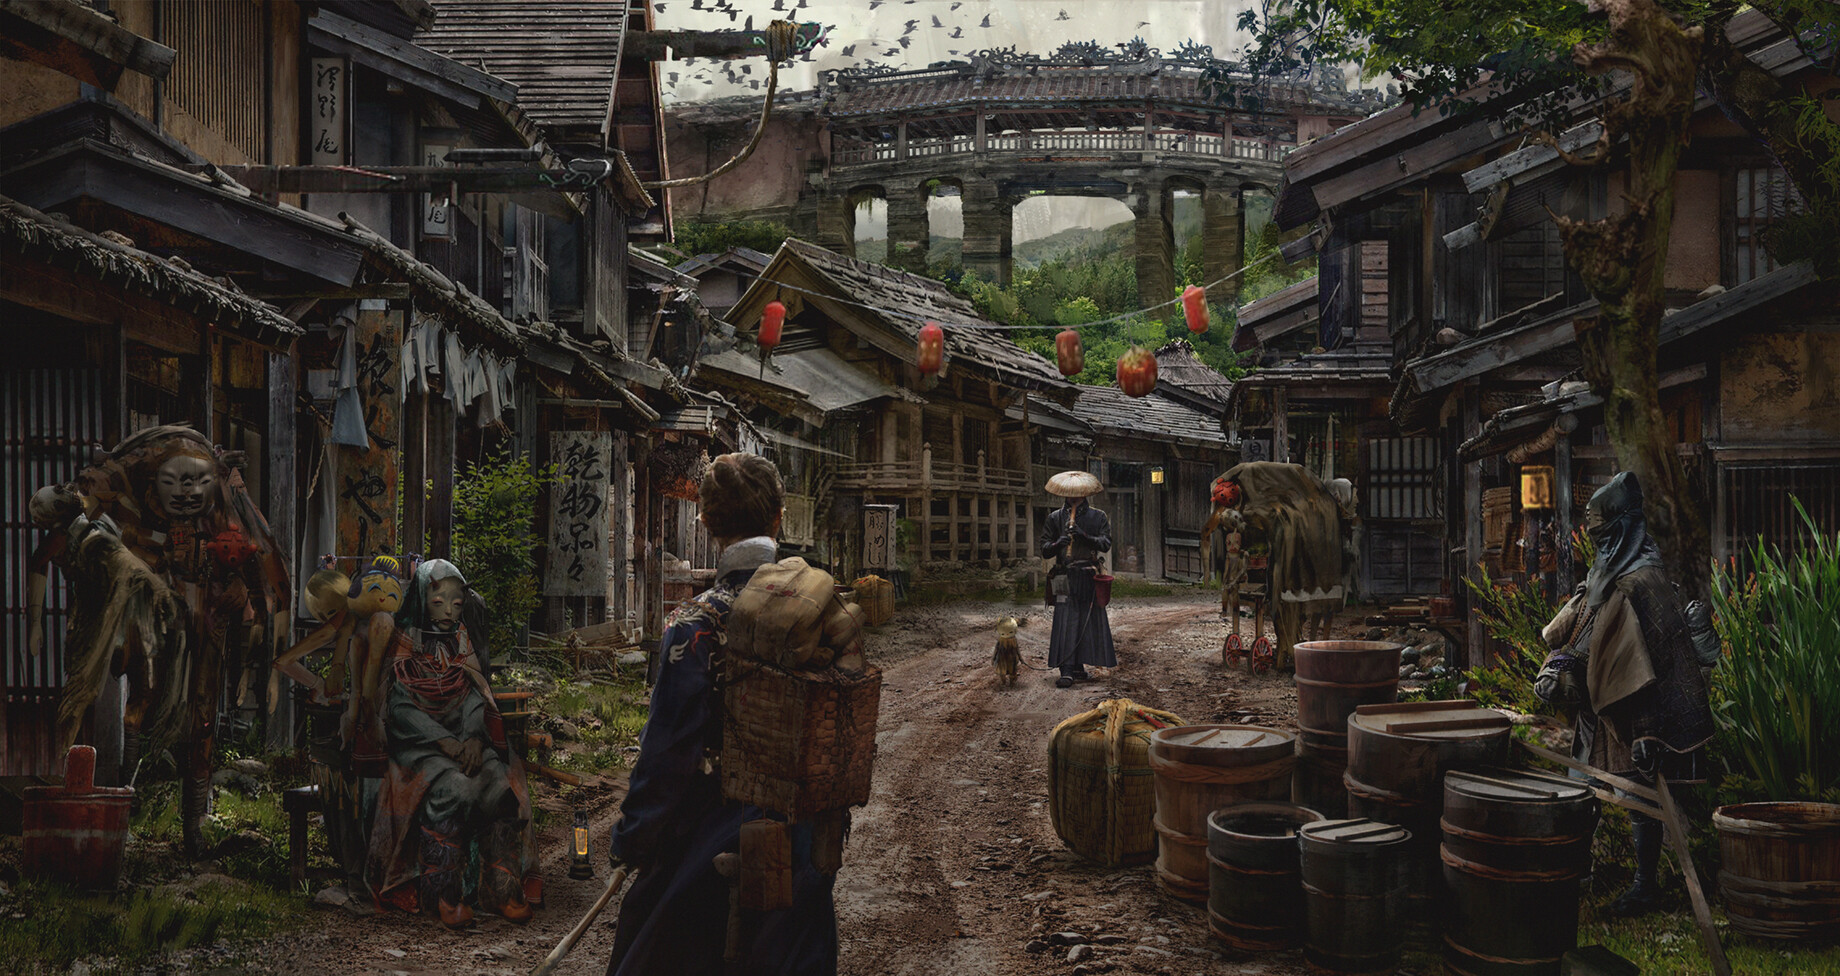 The Puppeteer's Village by Eddie Mendoza